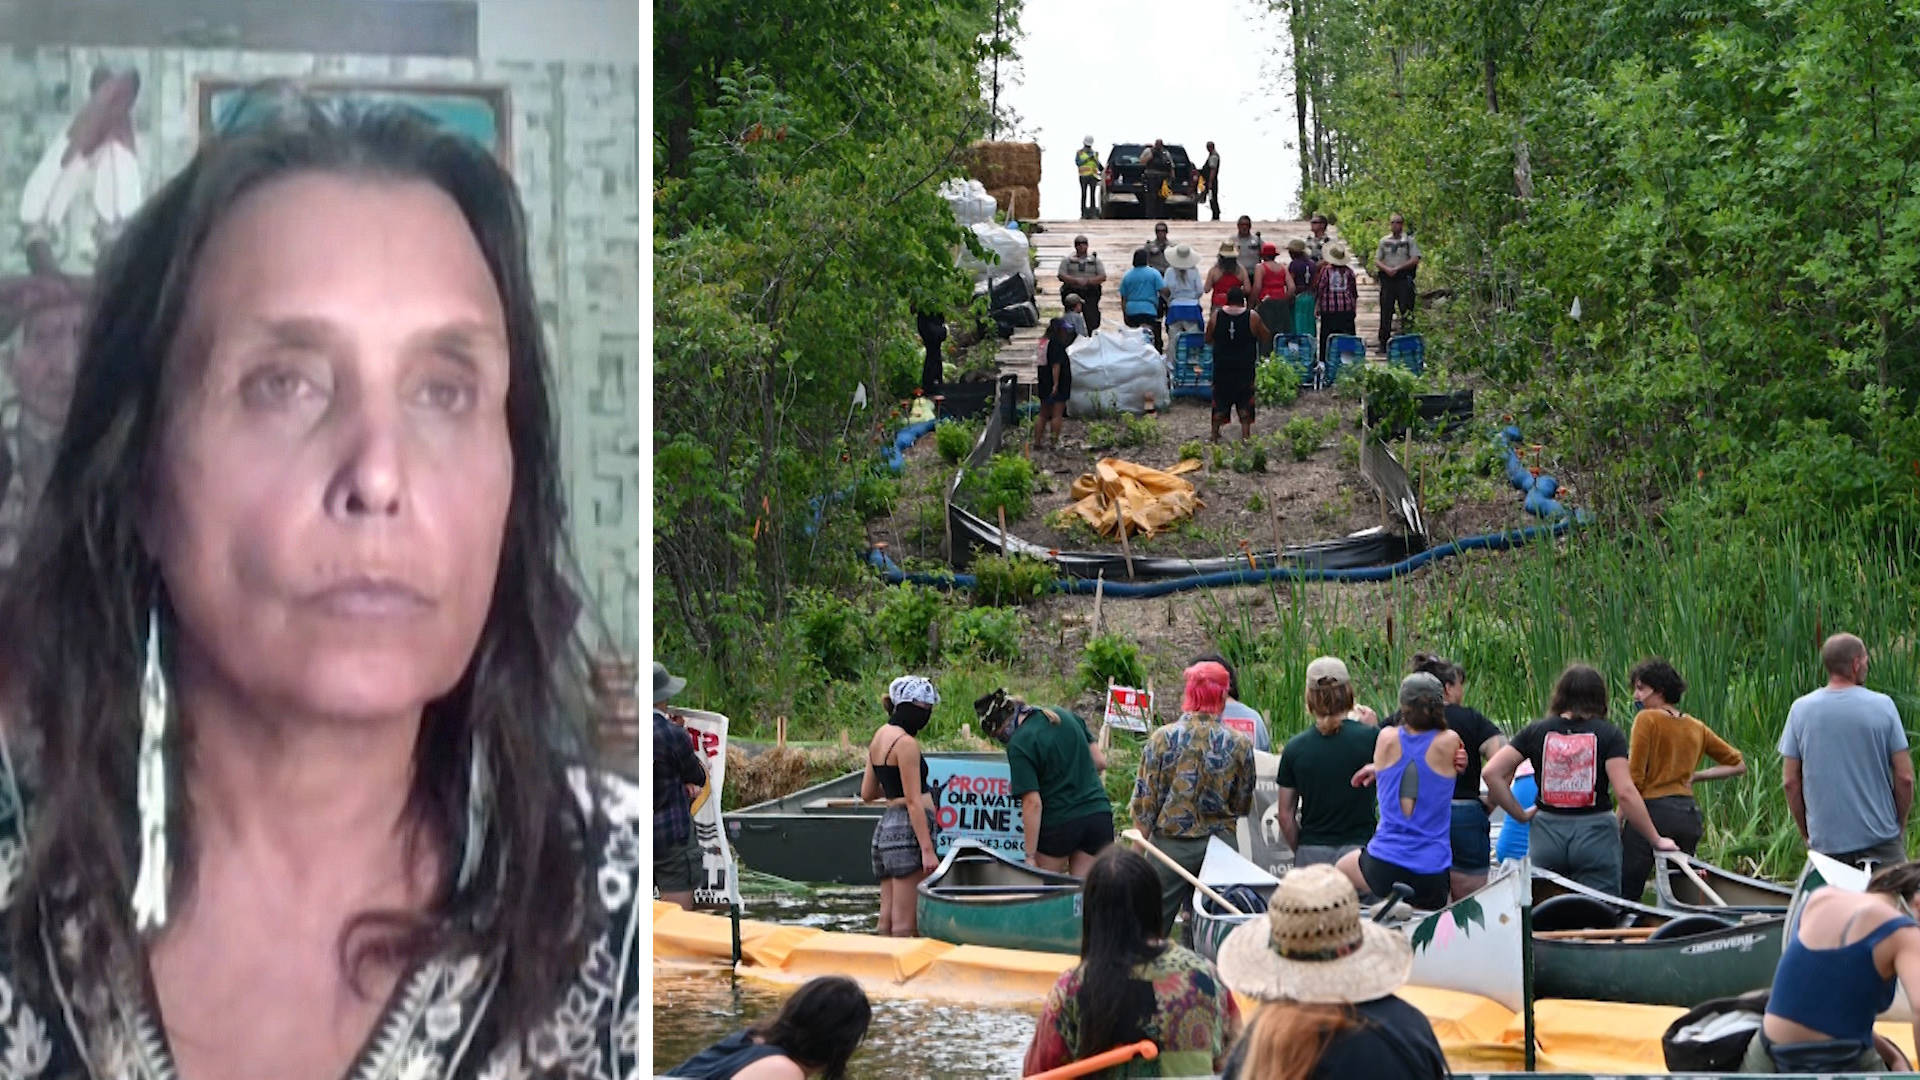 """Read more about the article """"People vs. Fossil Fuels'': Winona LaDuke & Mass Protests Call on Biden to Stop Line 3 Pipeline"""